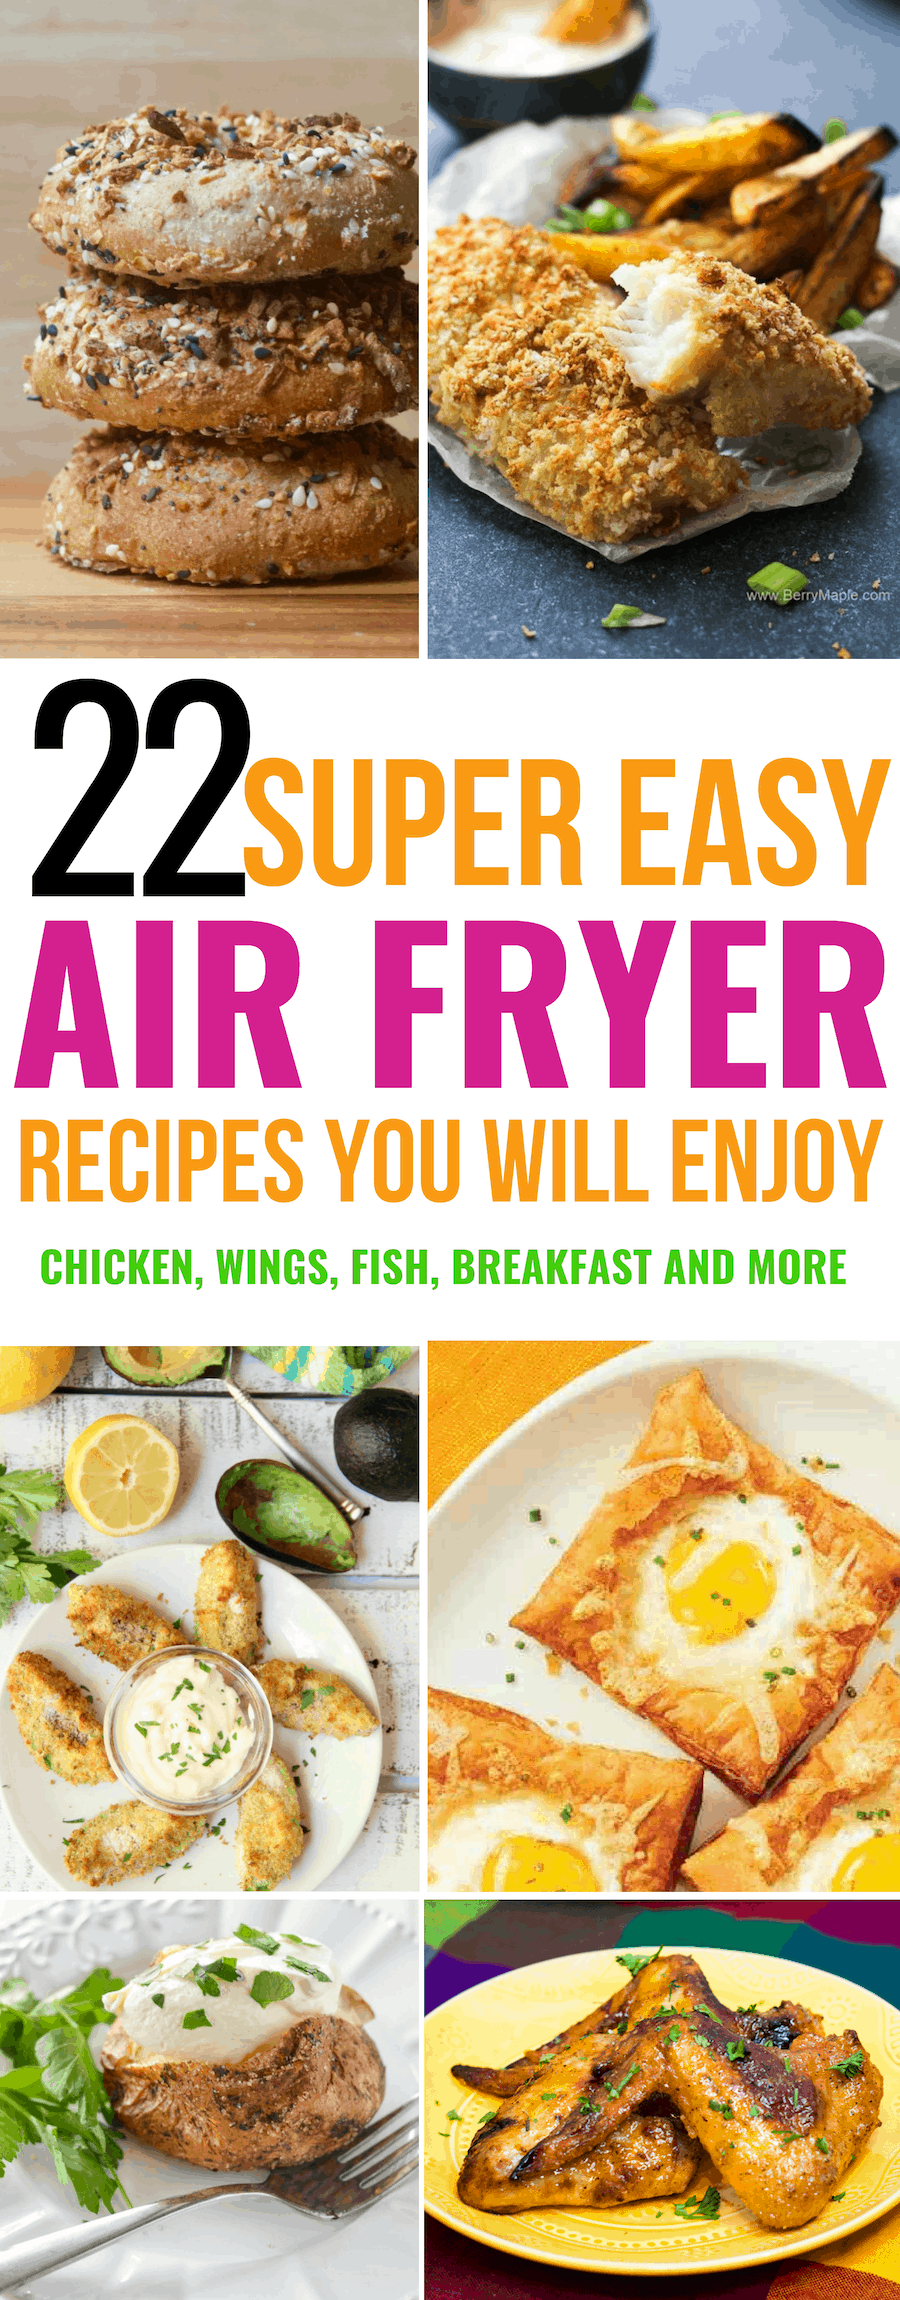 Air fryer recipes including air fryer chicken, air fryer wings, air fryer fish, air fryer breakfast and so much more!